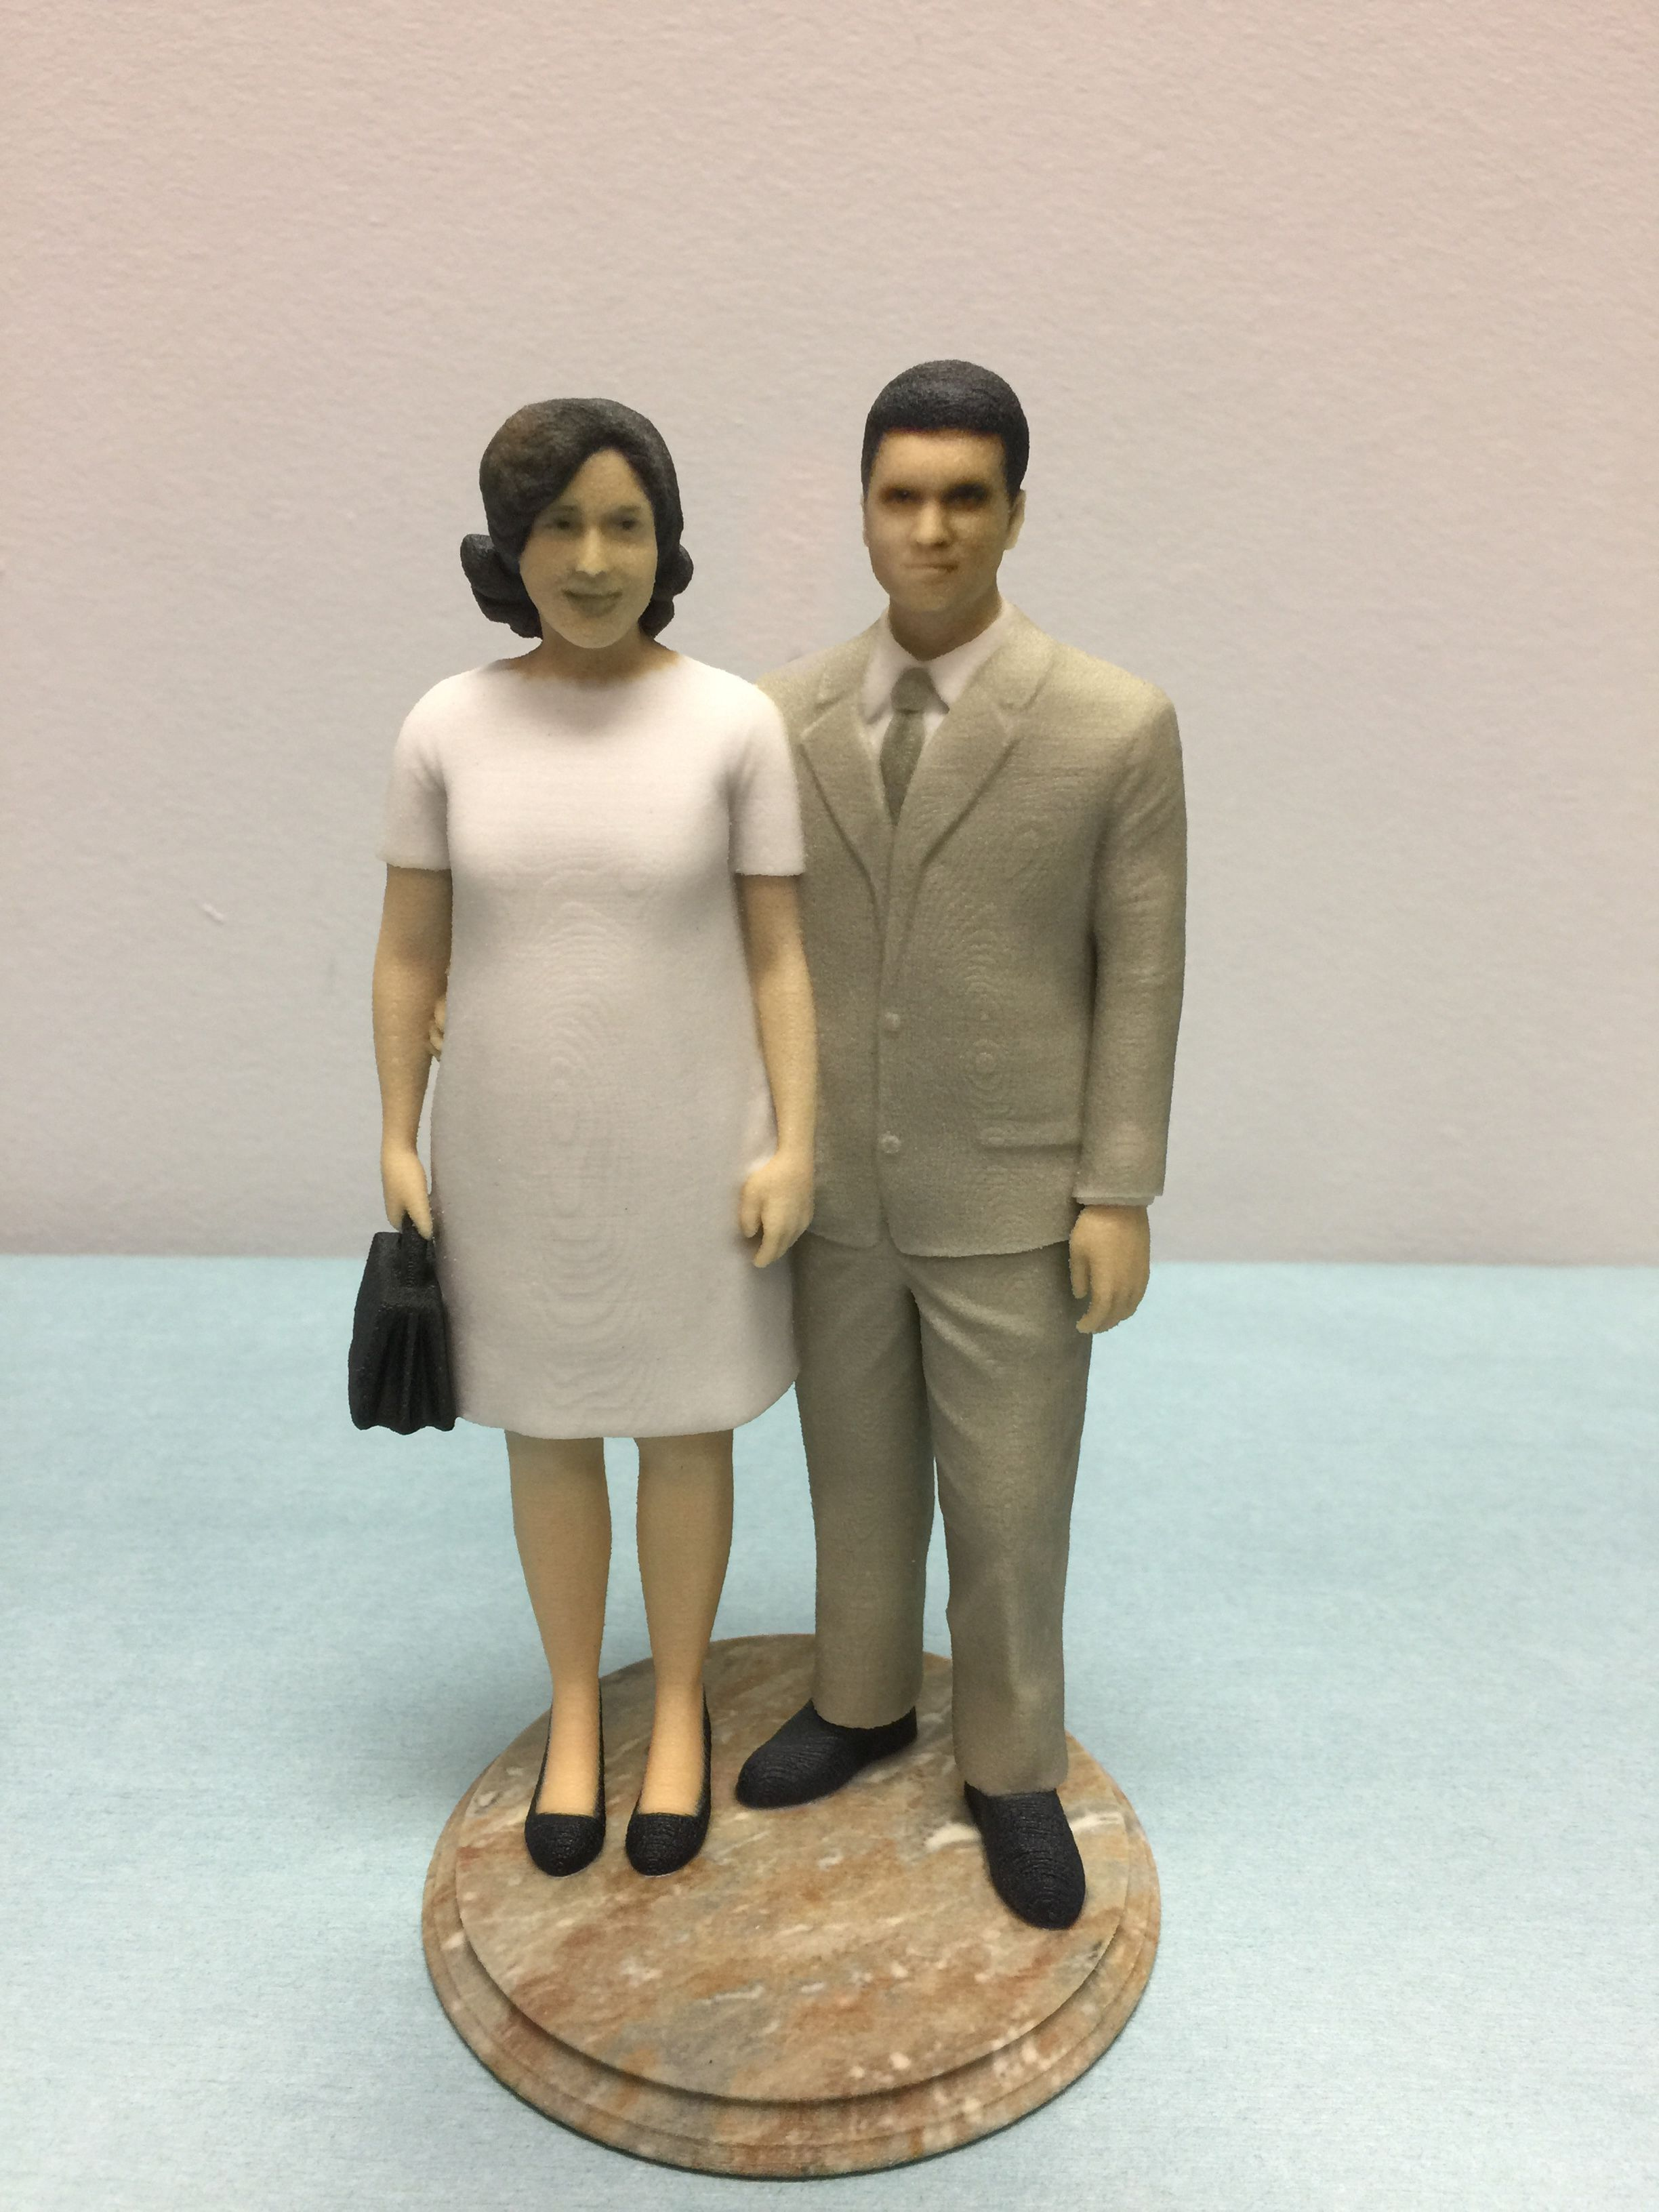 Custom Printed Wedding Cake Toppers The Body And Face Are All Life Like